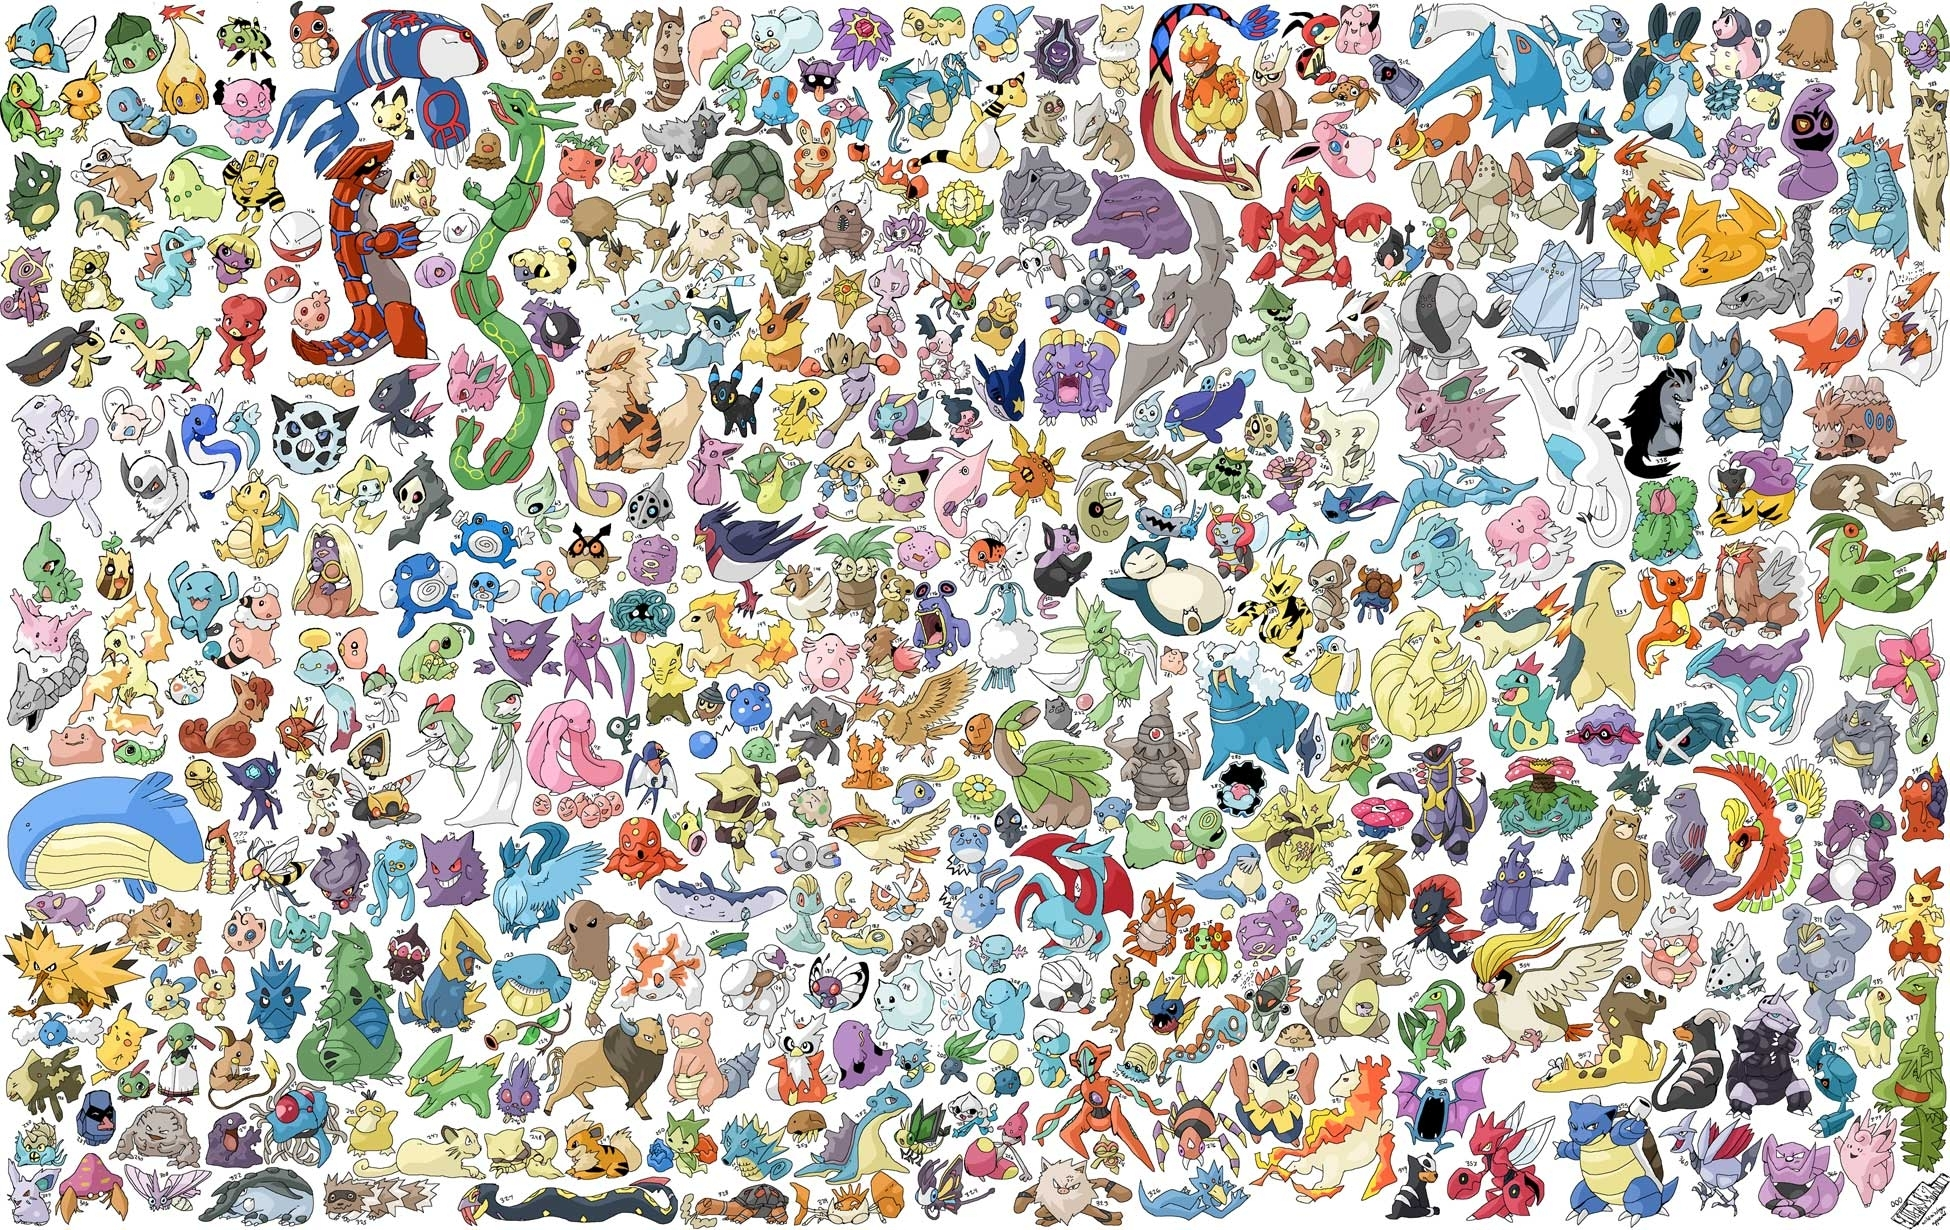 10 Most Popular Pokemon Wallpaper All Pokemon FULL HD 1080p For PC Desktop